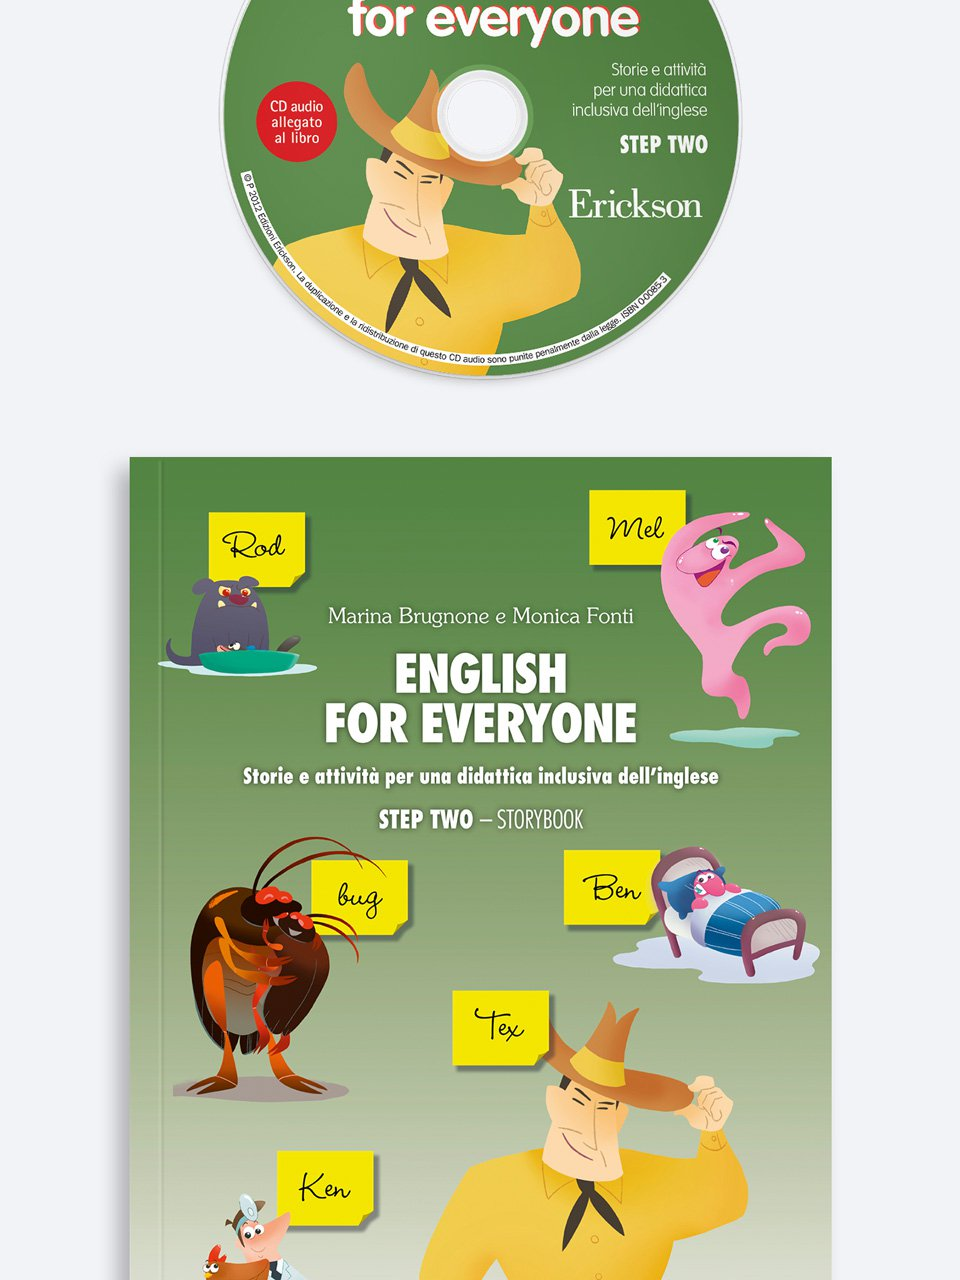 English for everyone - STEP TWO - Français facile - Libri - App e software - Erickson